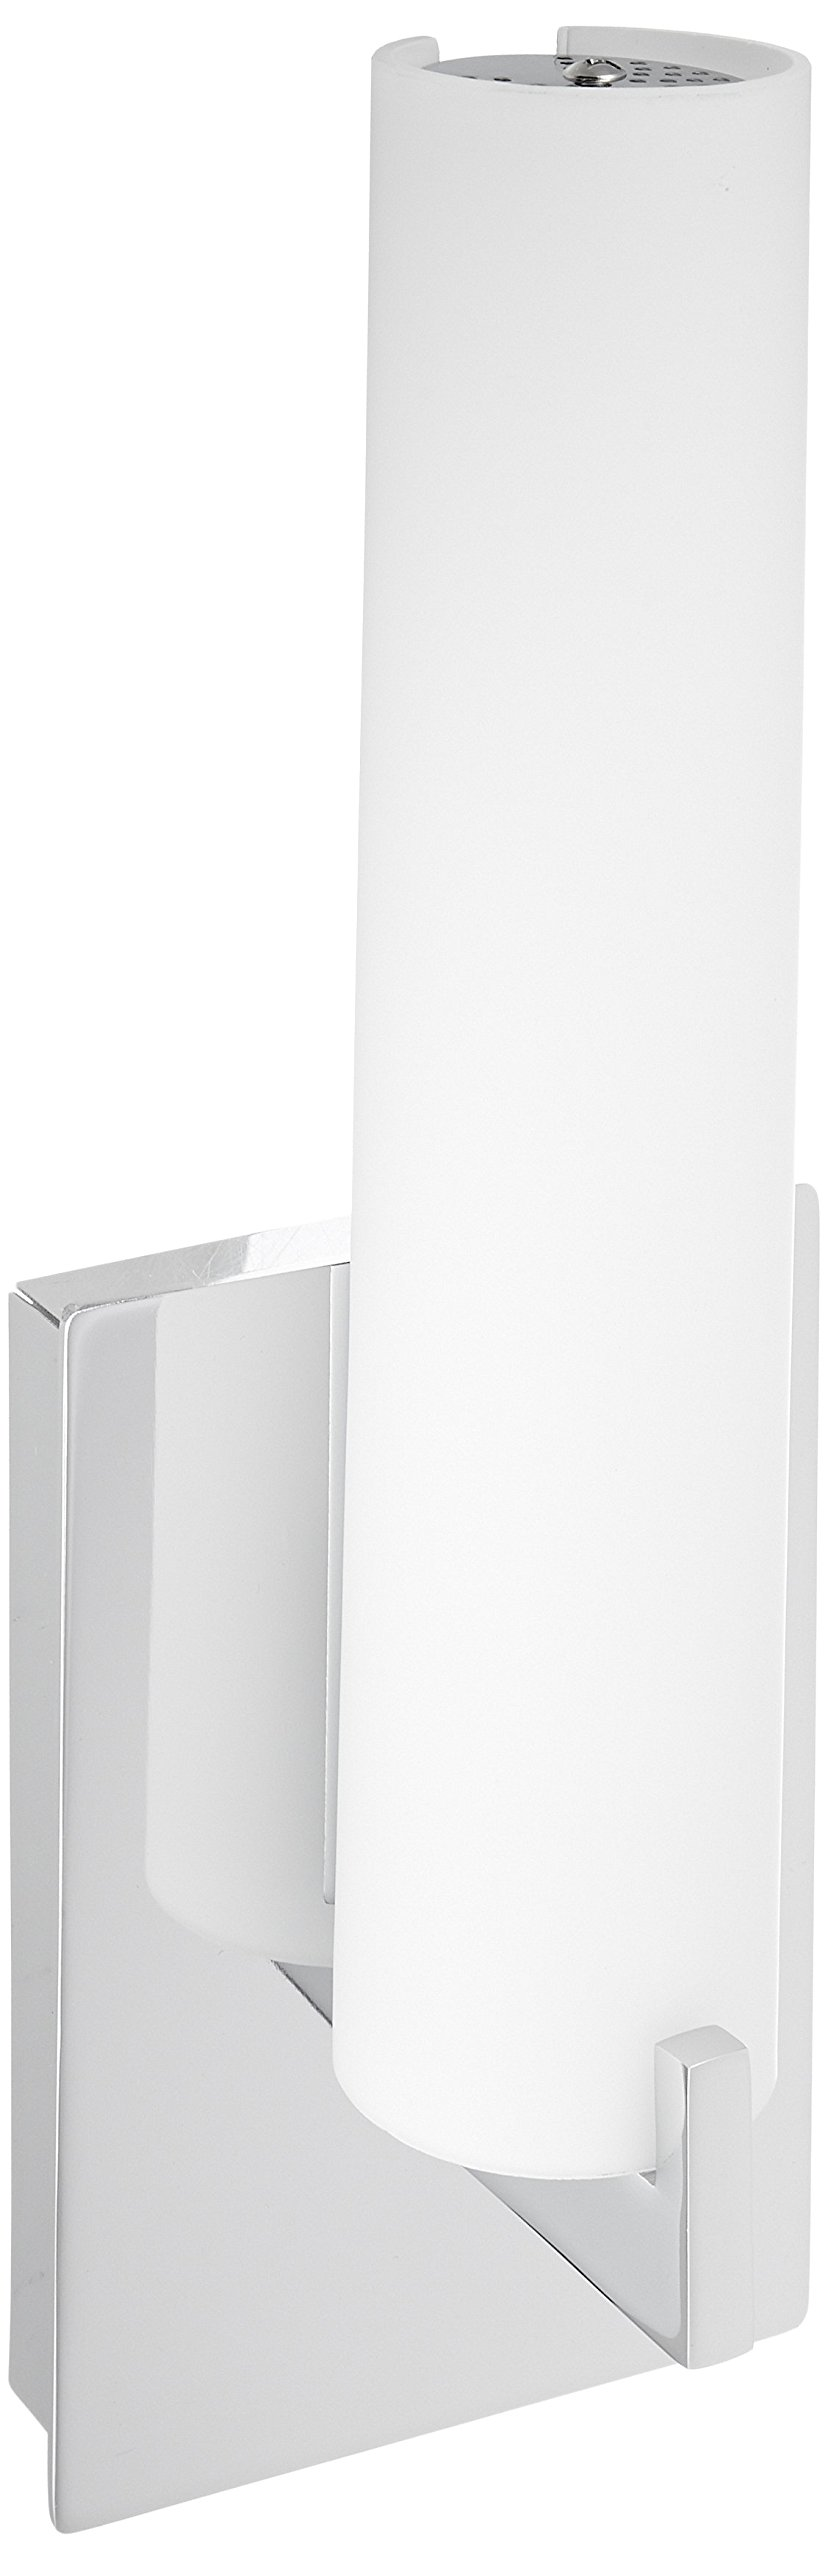 George Kovacs P5040-084-L, Tube, LED Wall Sconce, Brushed Nickel